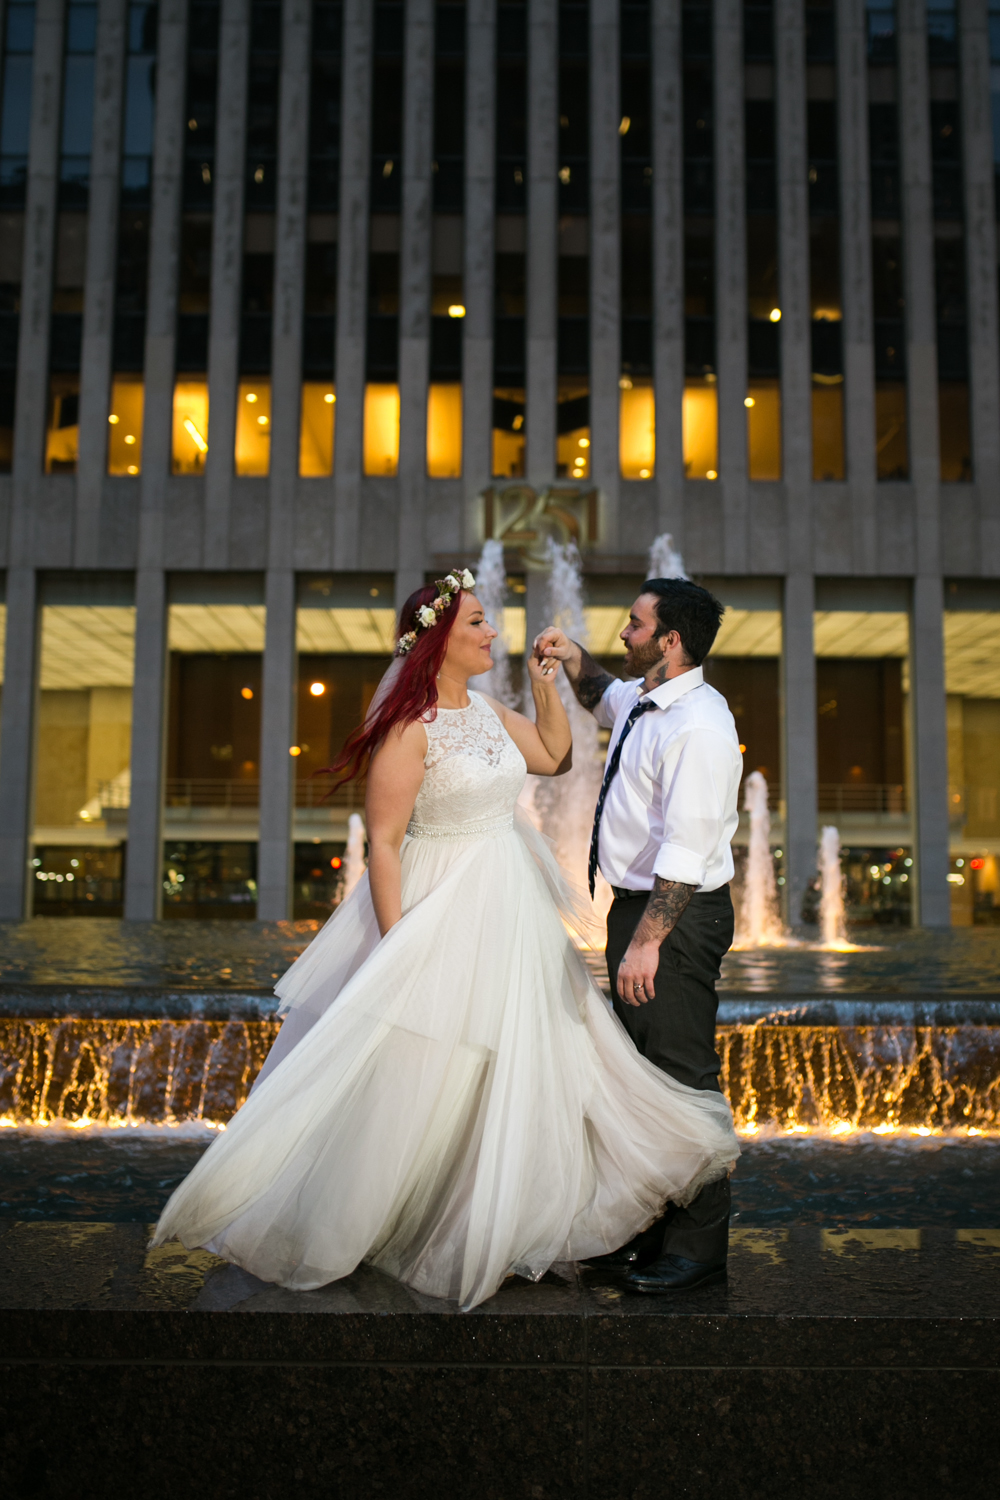 Rainy Wedding Photos in Manhattan